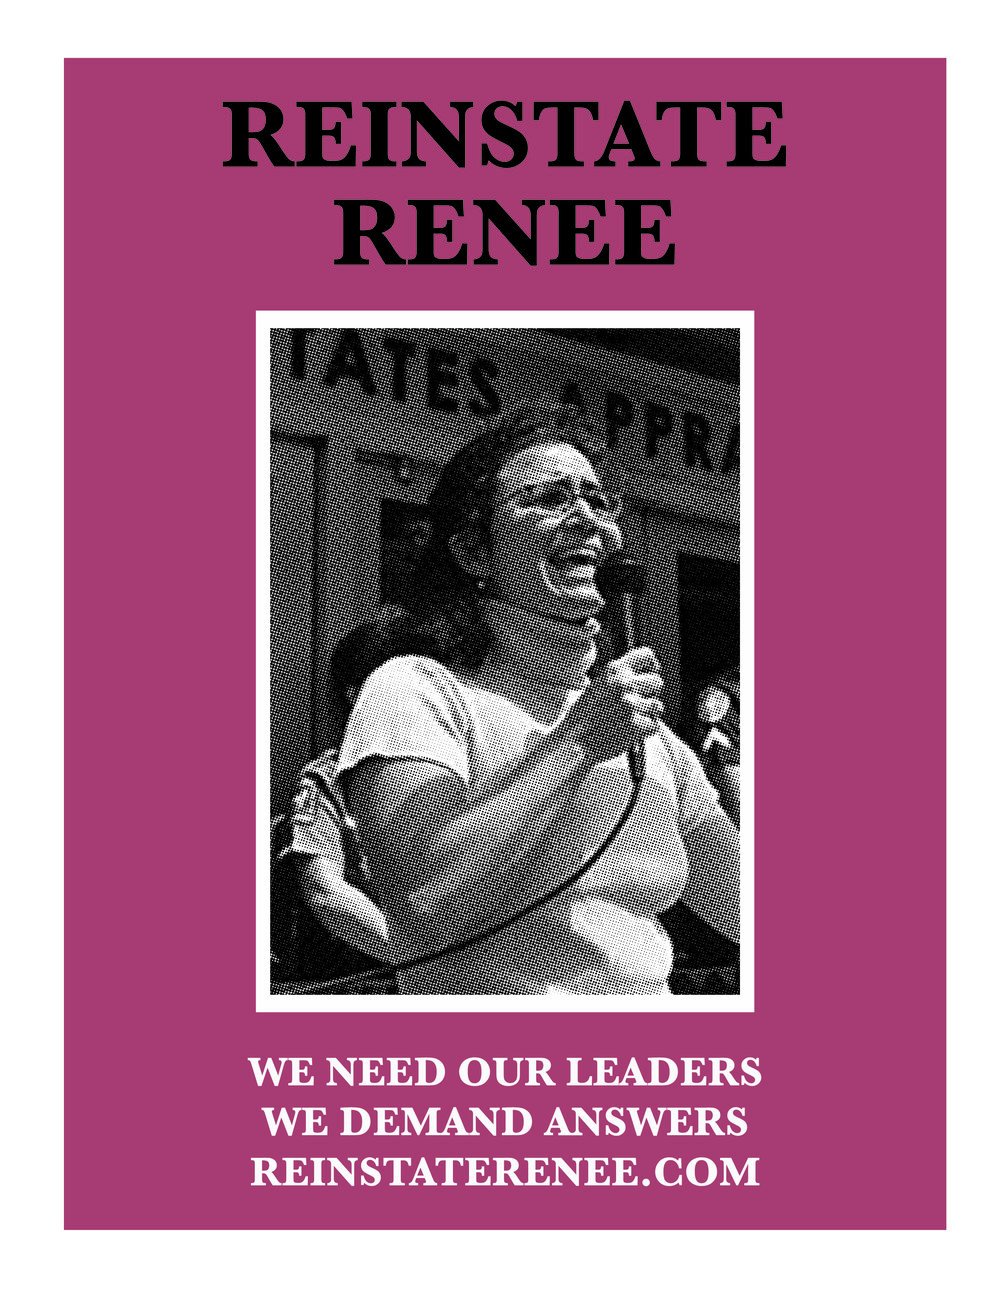 reinstate renee flyer-01.jpg